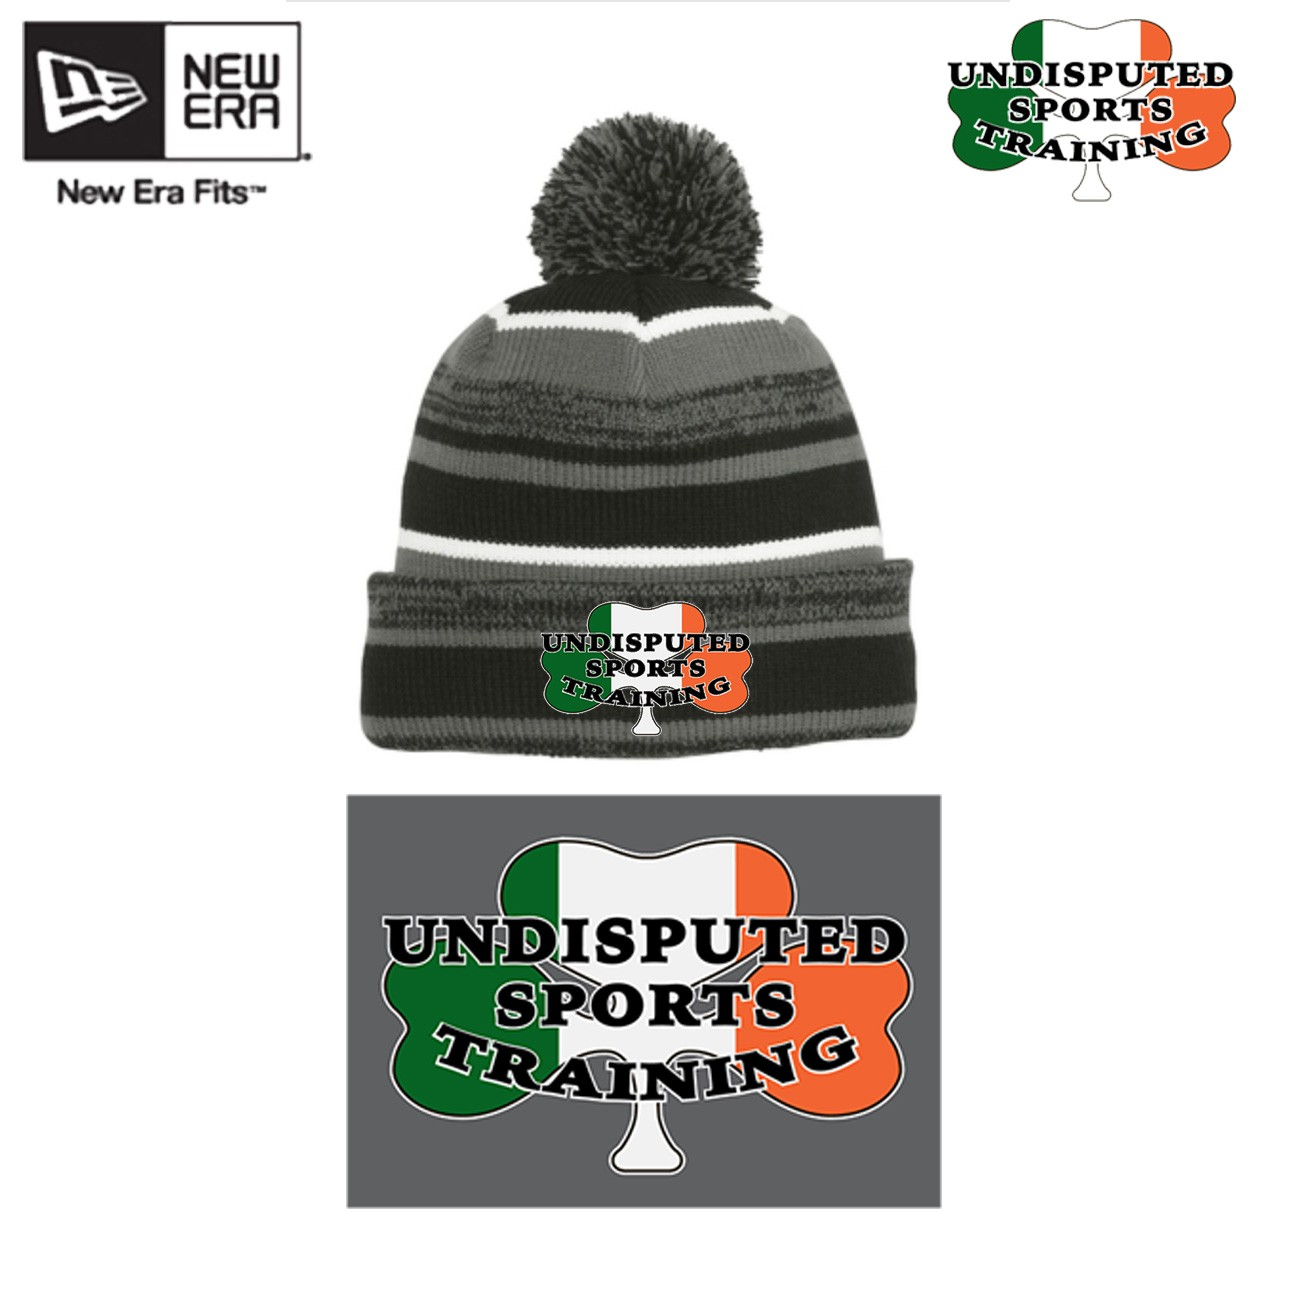 Undisputed Sports Training New Era® Sideline Beanie NE902